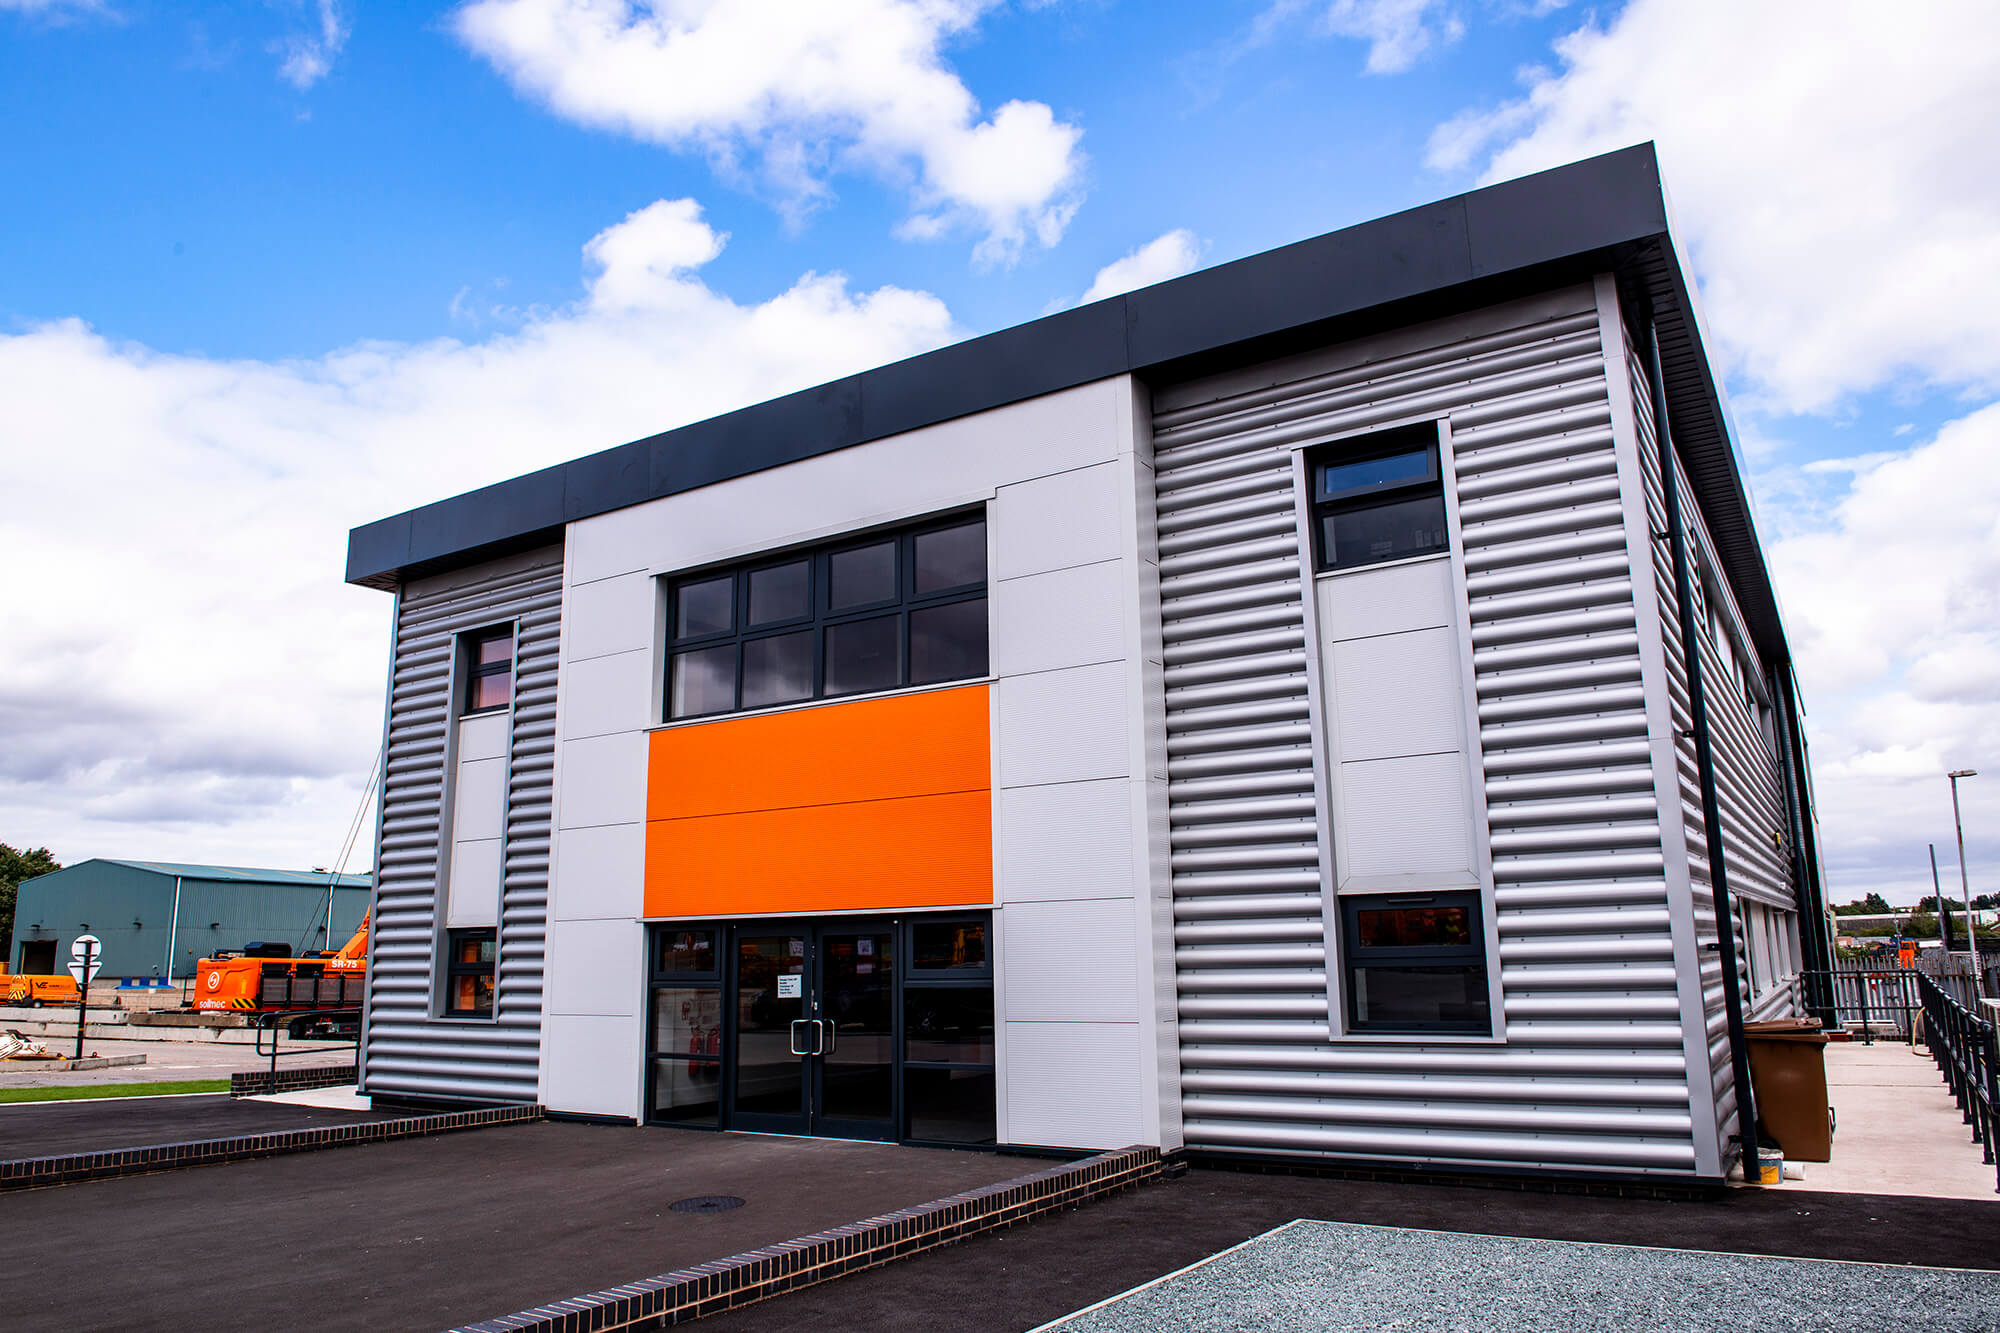 A grey building with an orange panel against a blue sky with white clouds